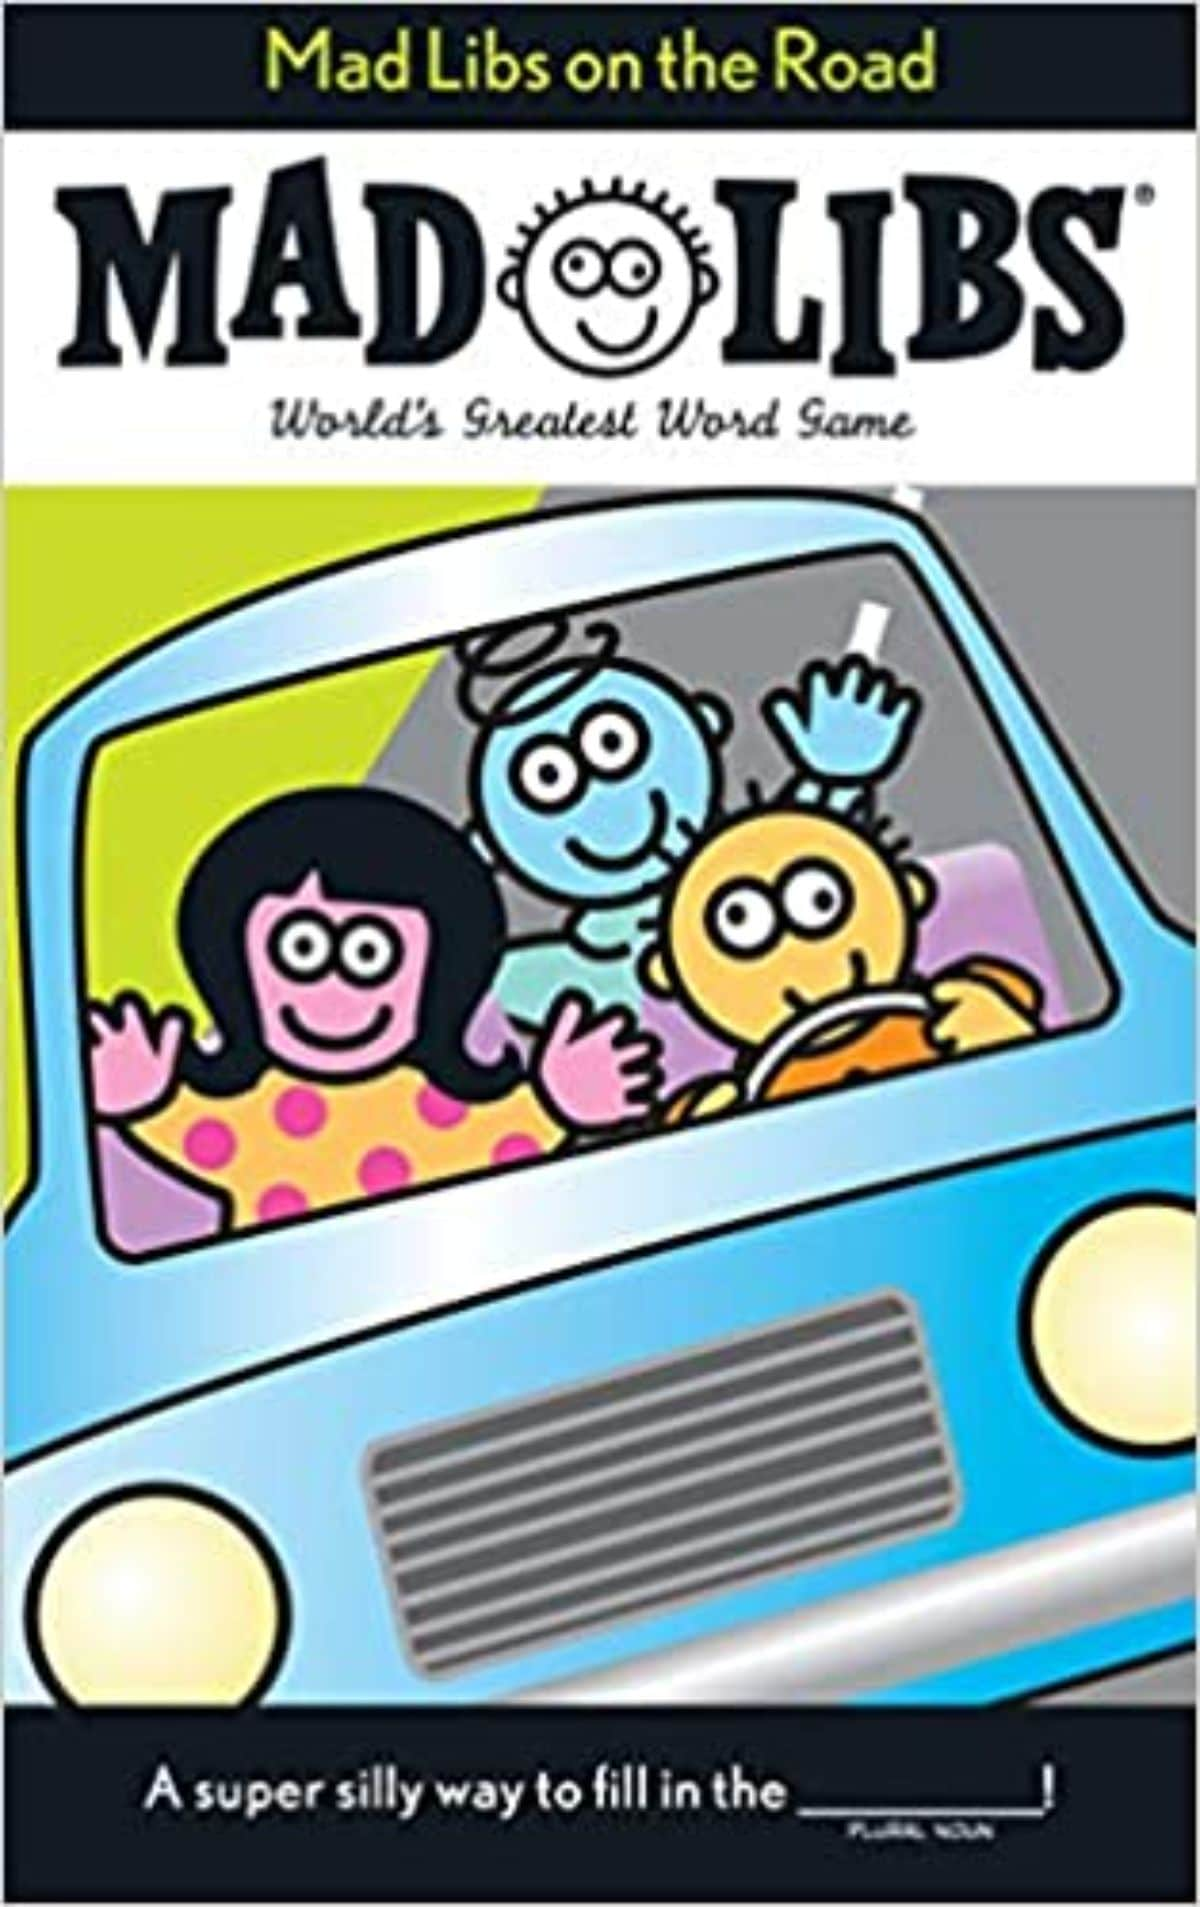 the front cover of a Madlibs Book showing 3 cartoon figures in a blue car, waving at the reader